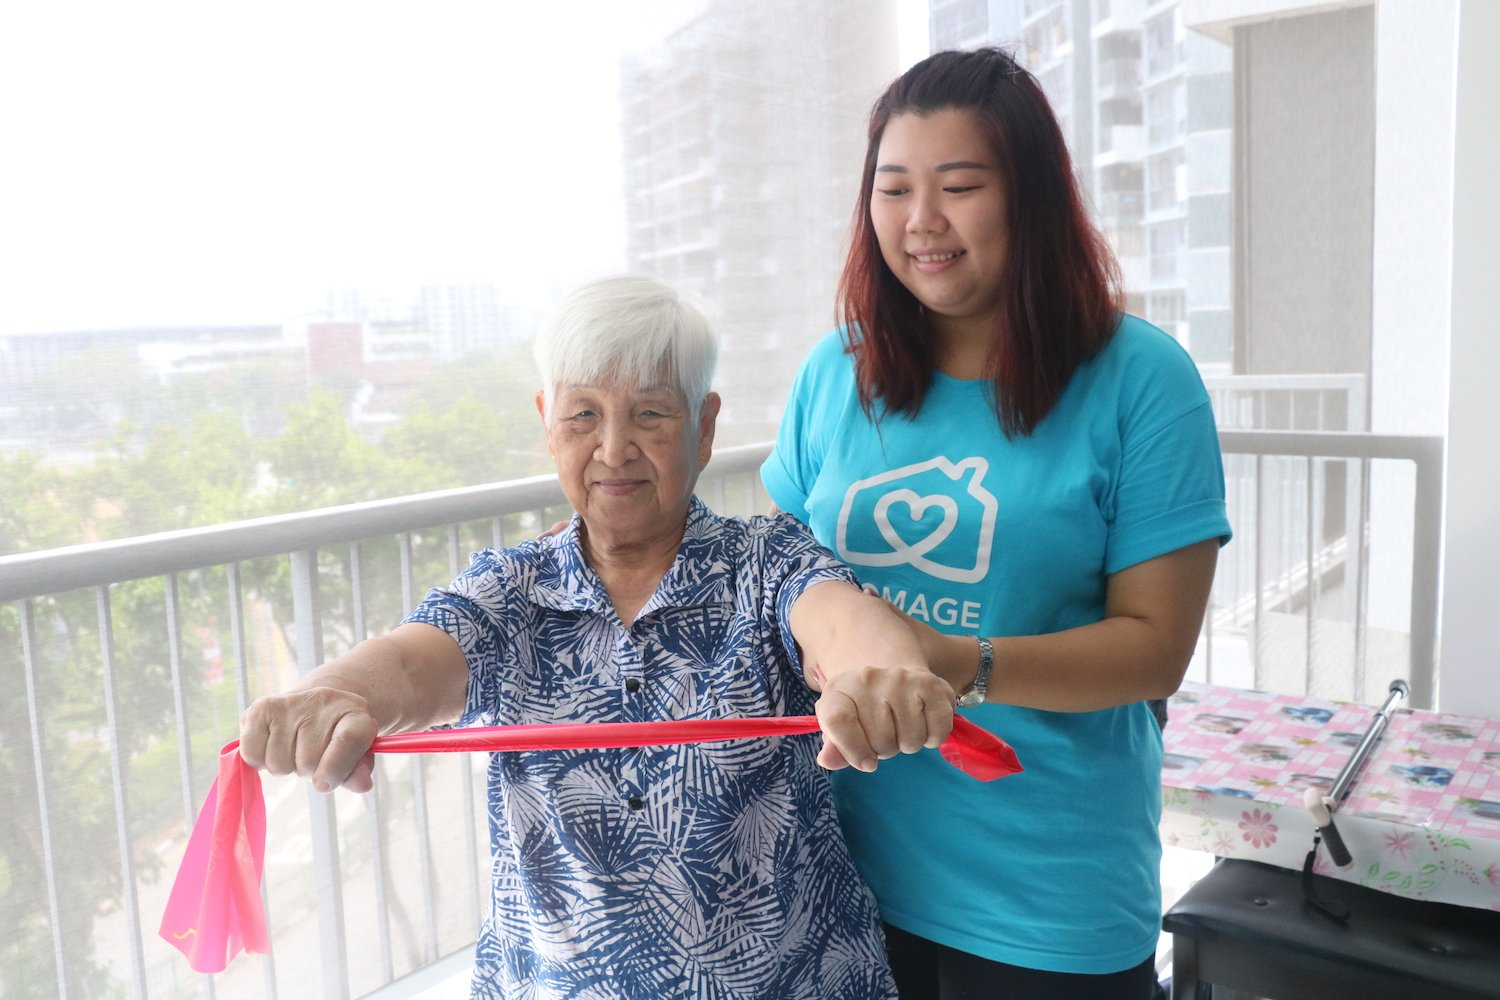 Homage Care Professional helping elderly woman to stay physically active with resistance band exercises